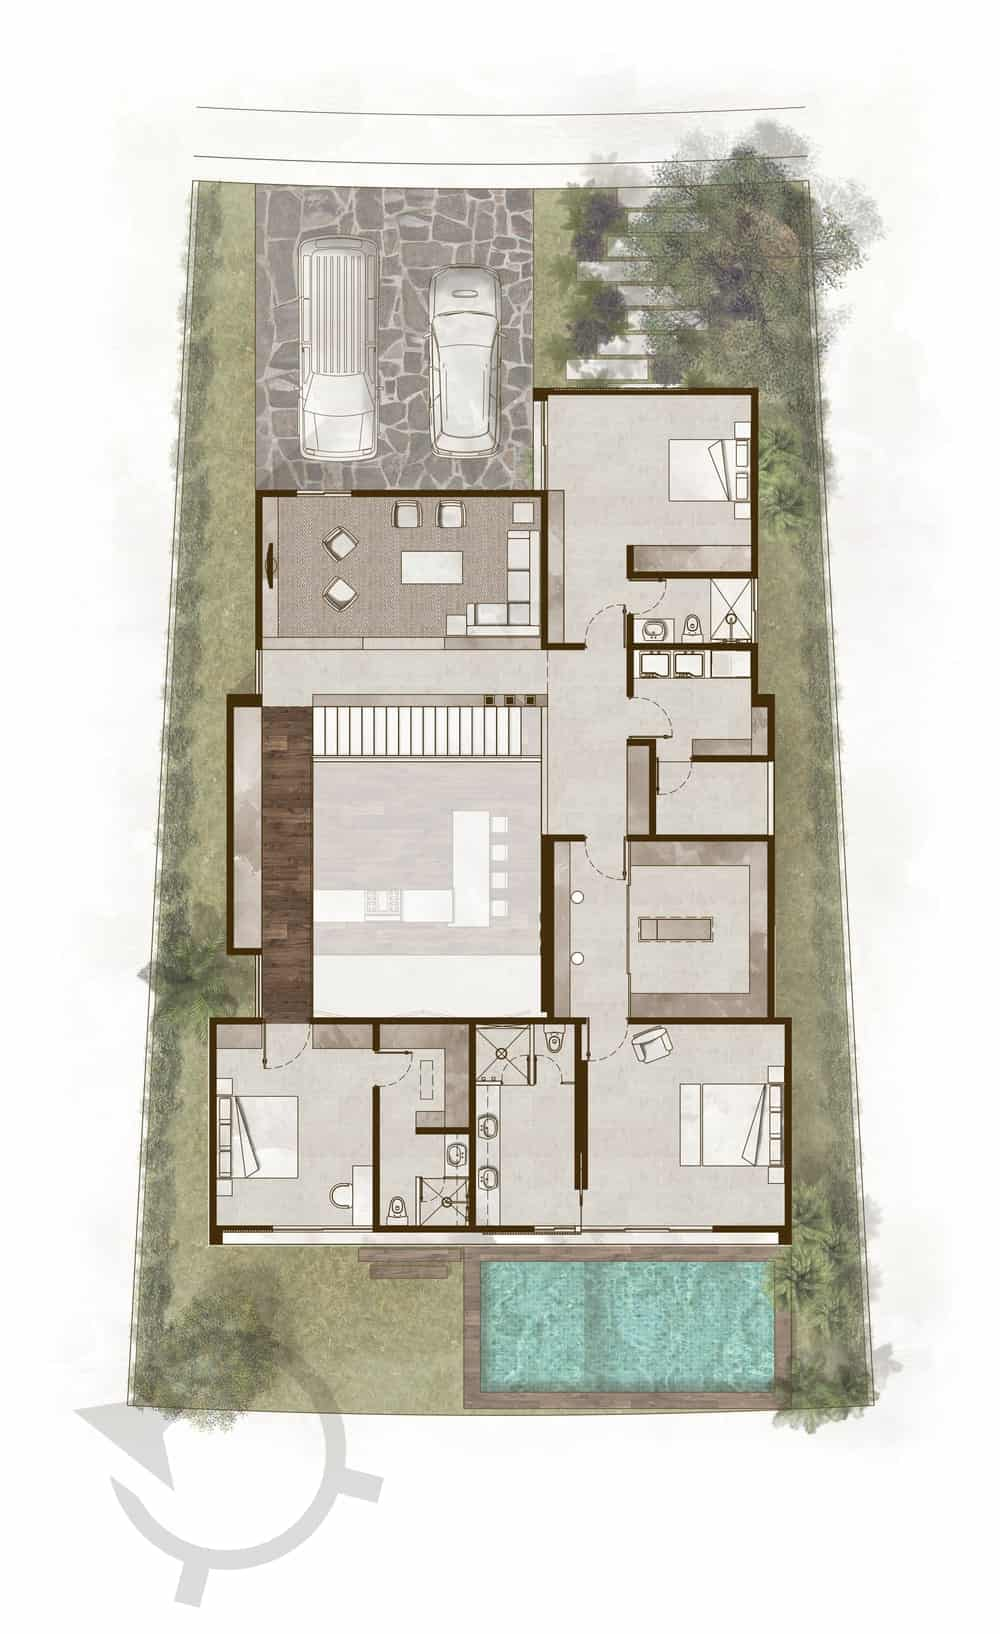 This is the illustration of the entire floor plan of the property with the second floor of the interior and the surrounding landscape.